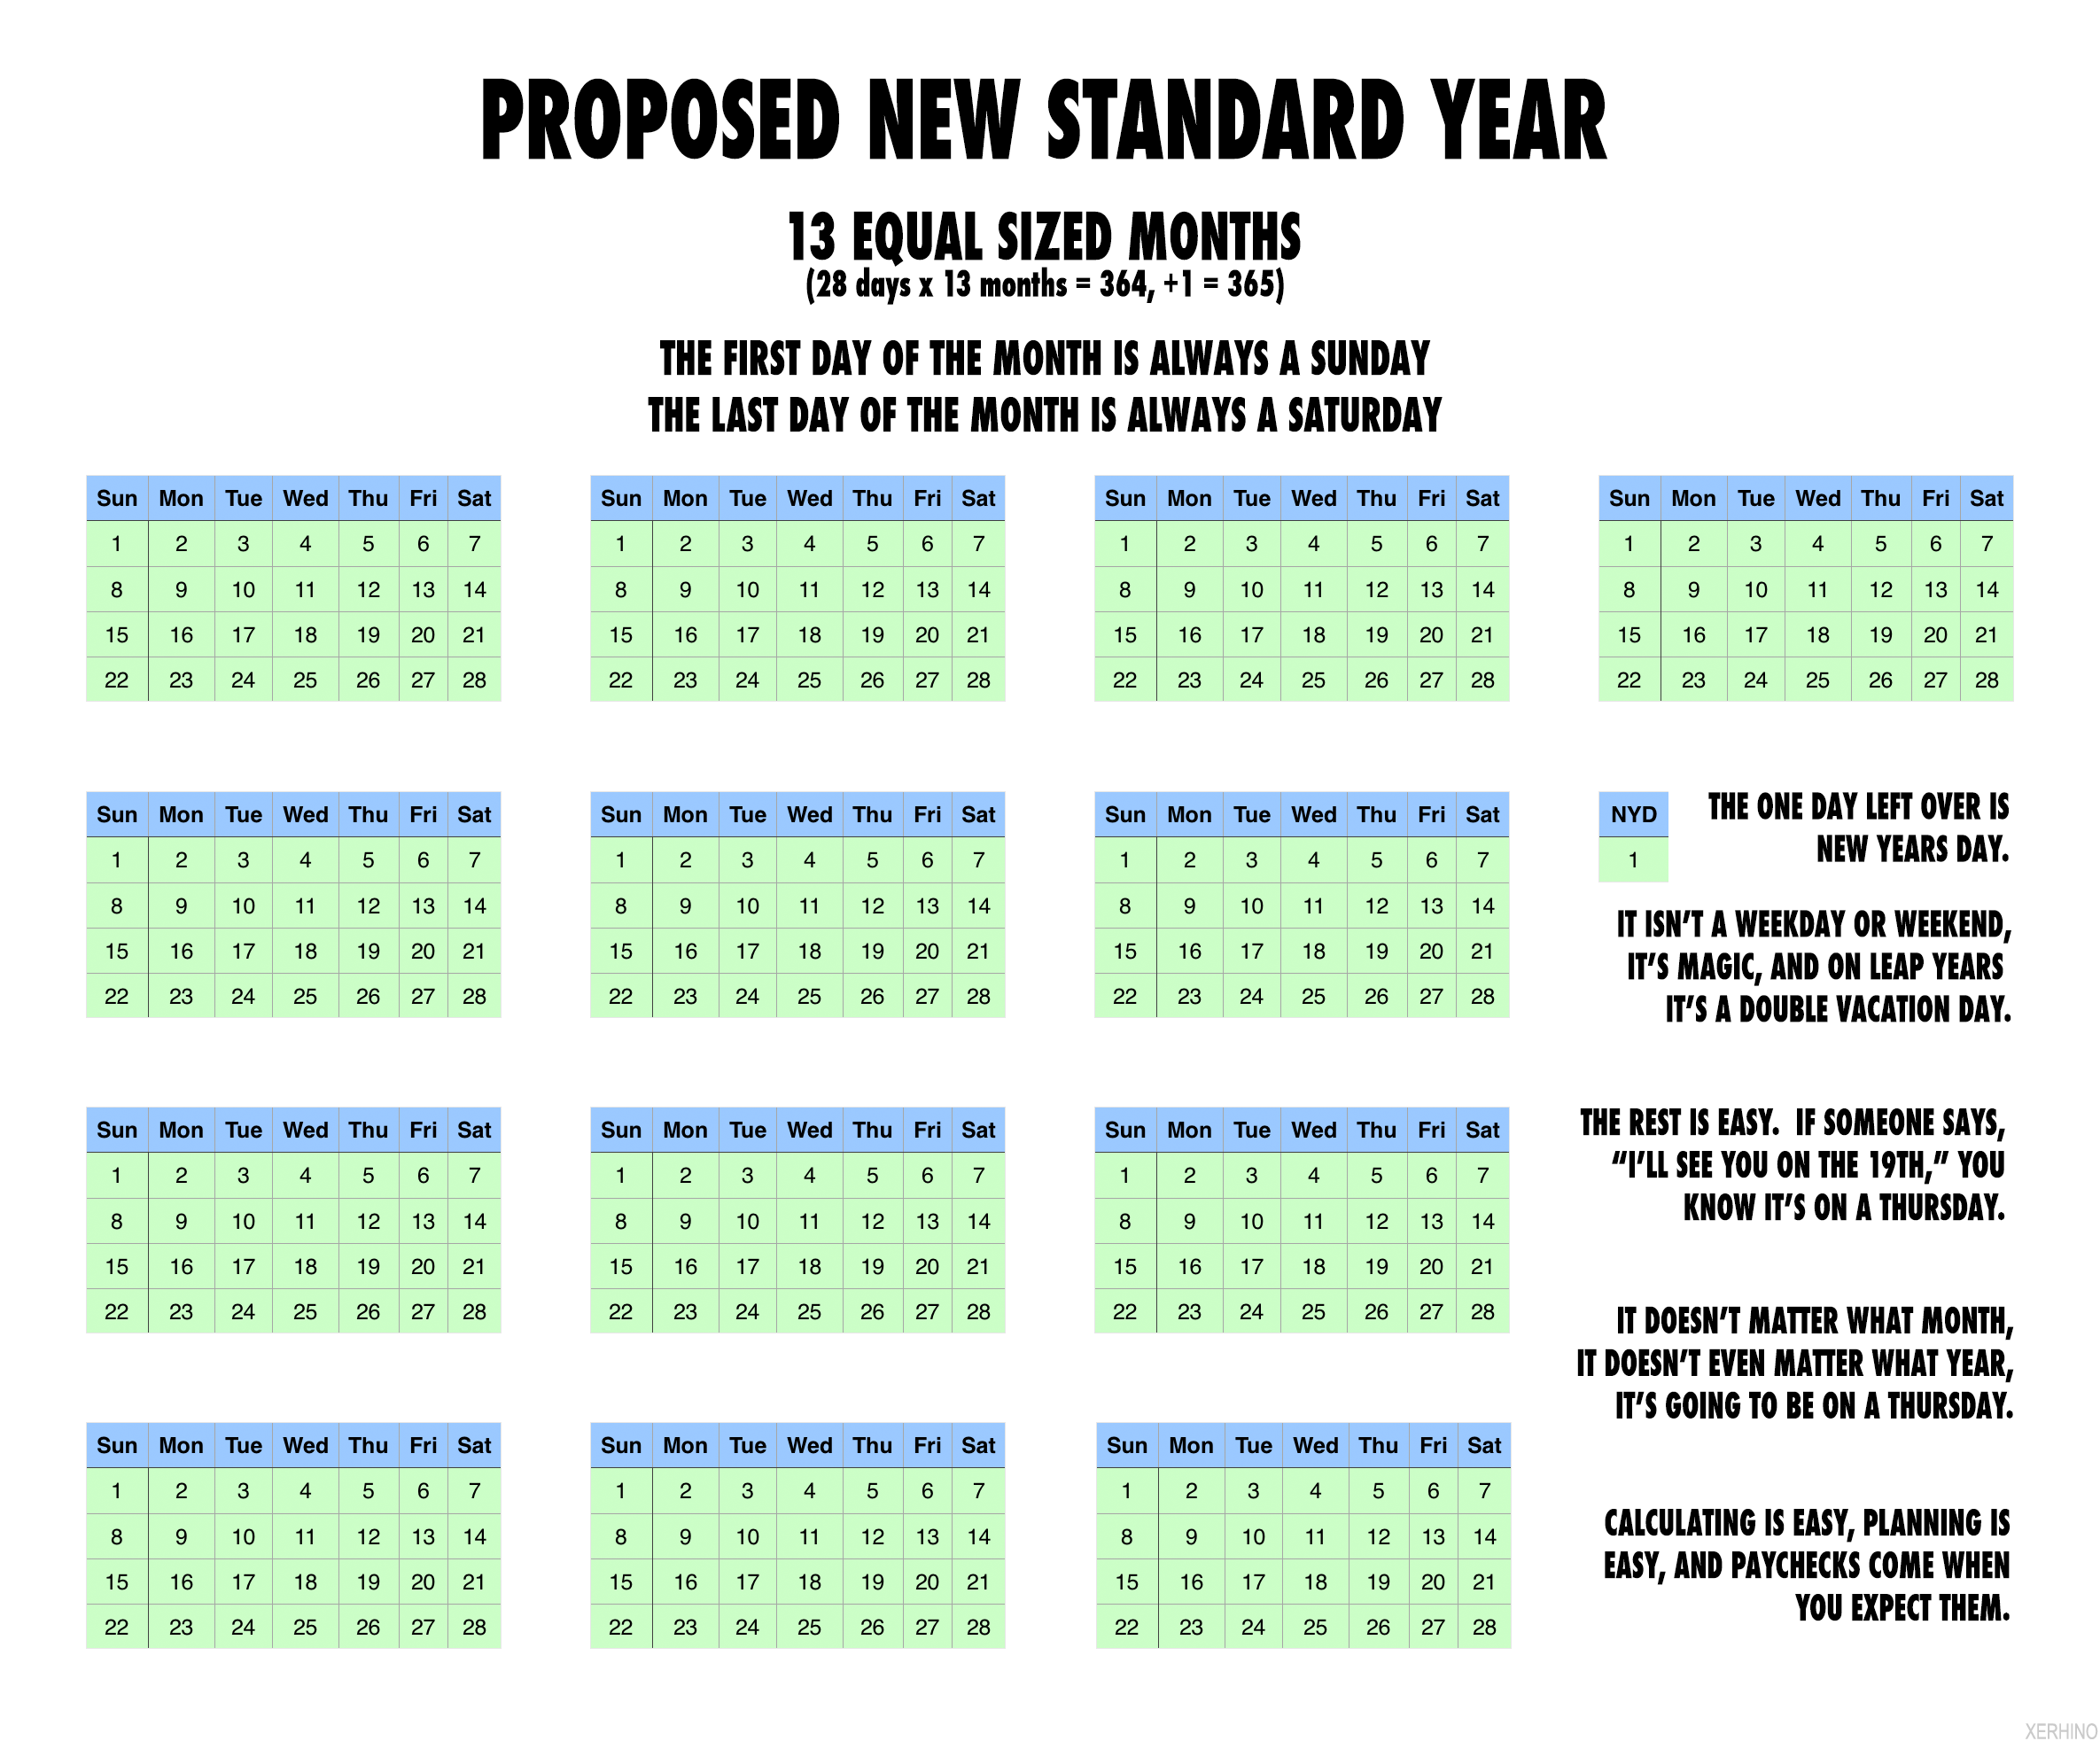 proposed new standard year with 13 equal sized months